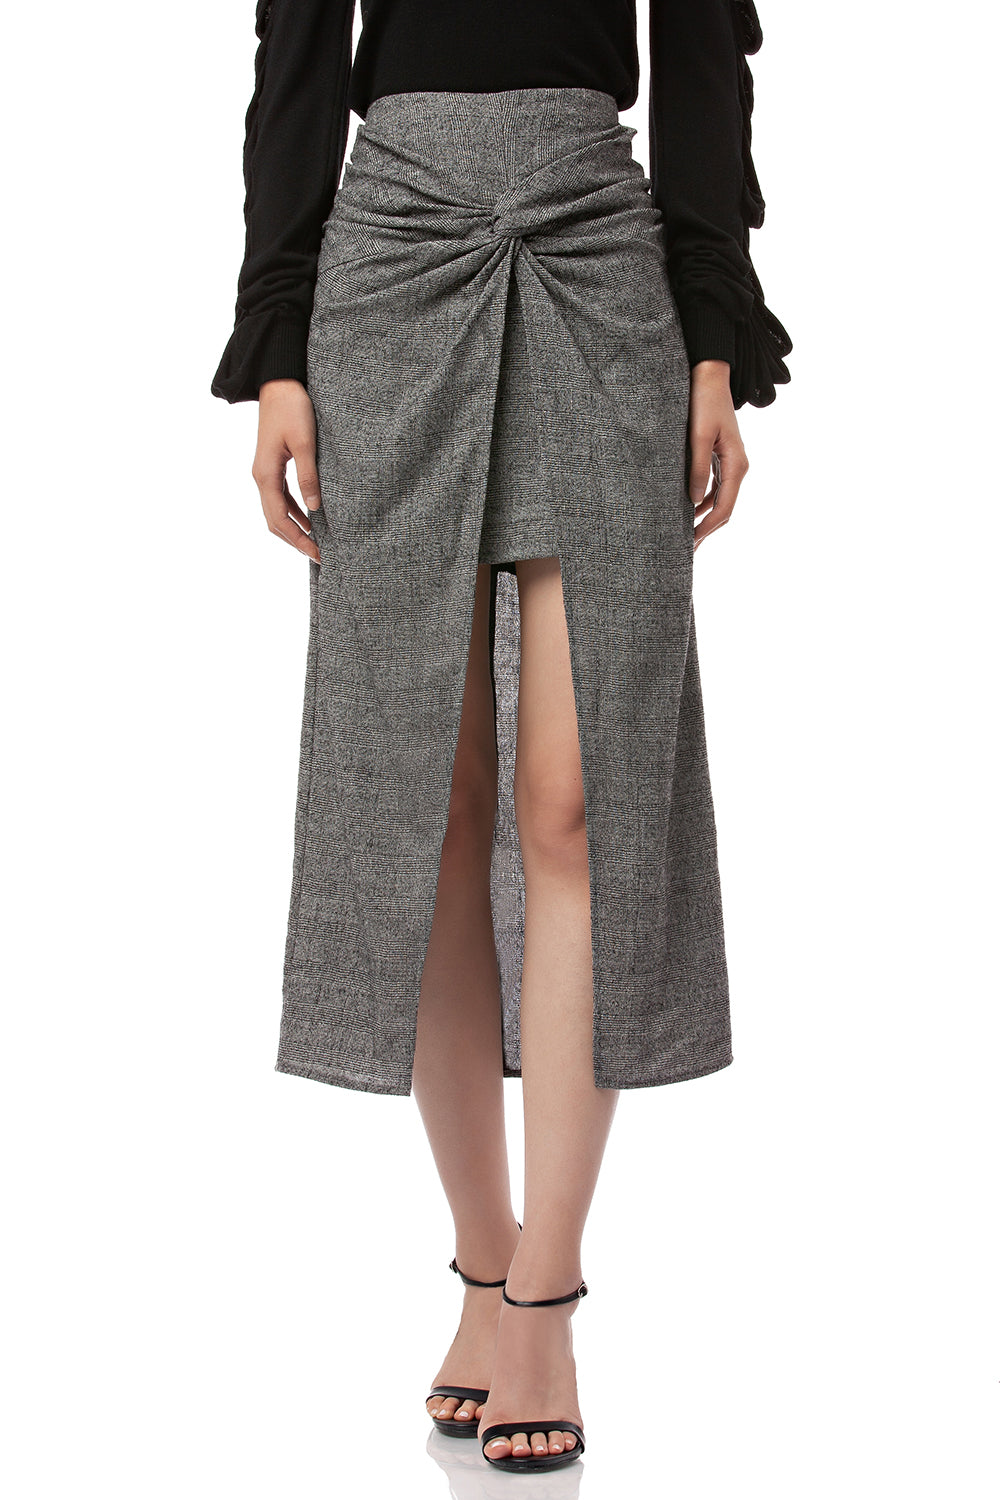 Zola Woven Plaid Twisted Skirt in Grey